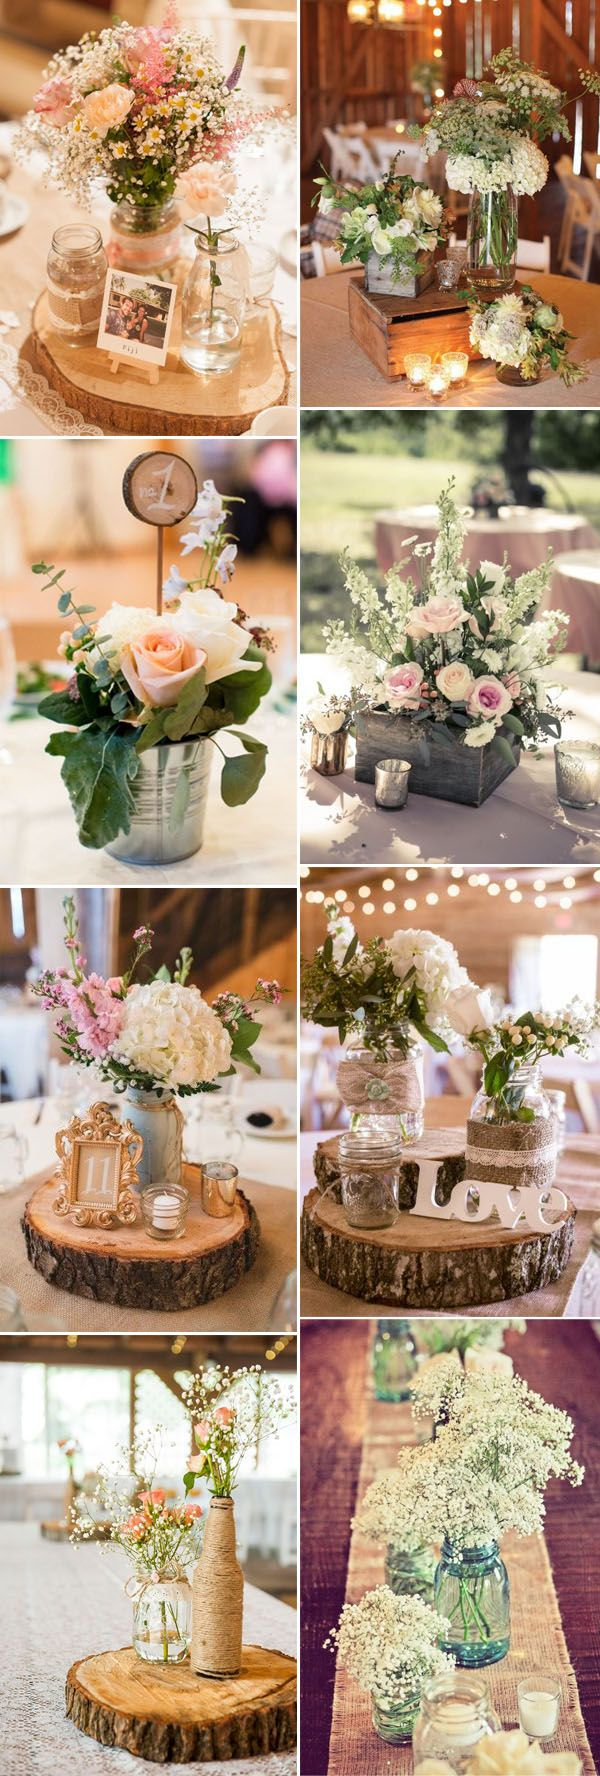 Stunning wedding centerpieces ideas rustic